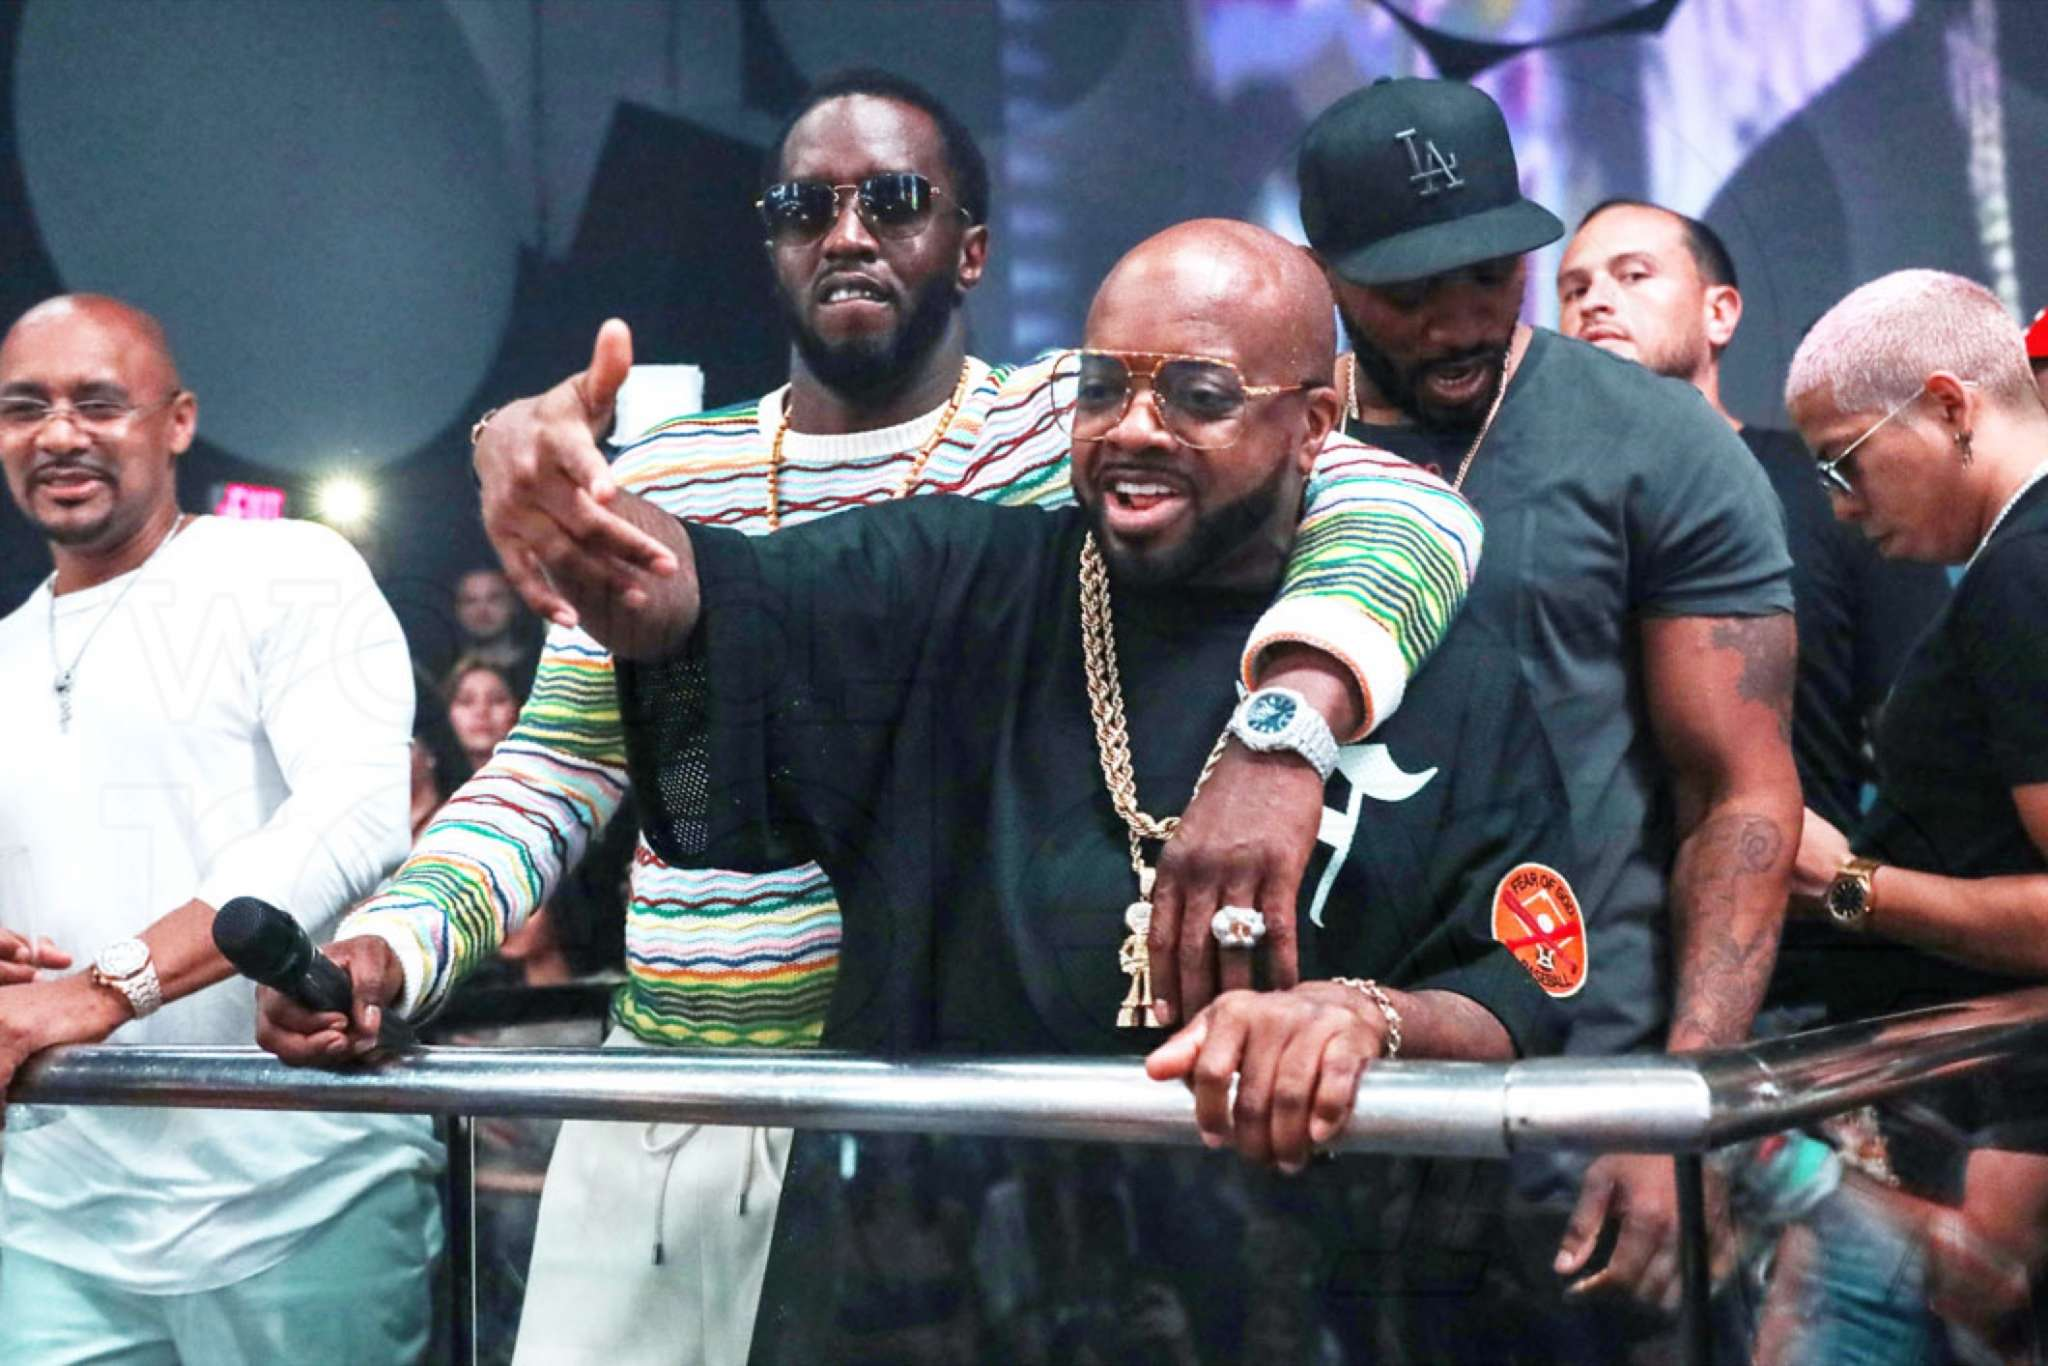 Diddy and Jermaine Dupri Have Heated Exchange While Debating Catalogs